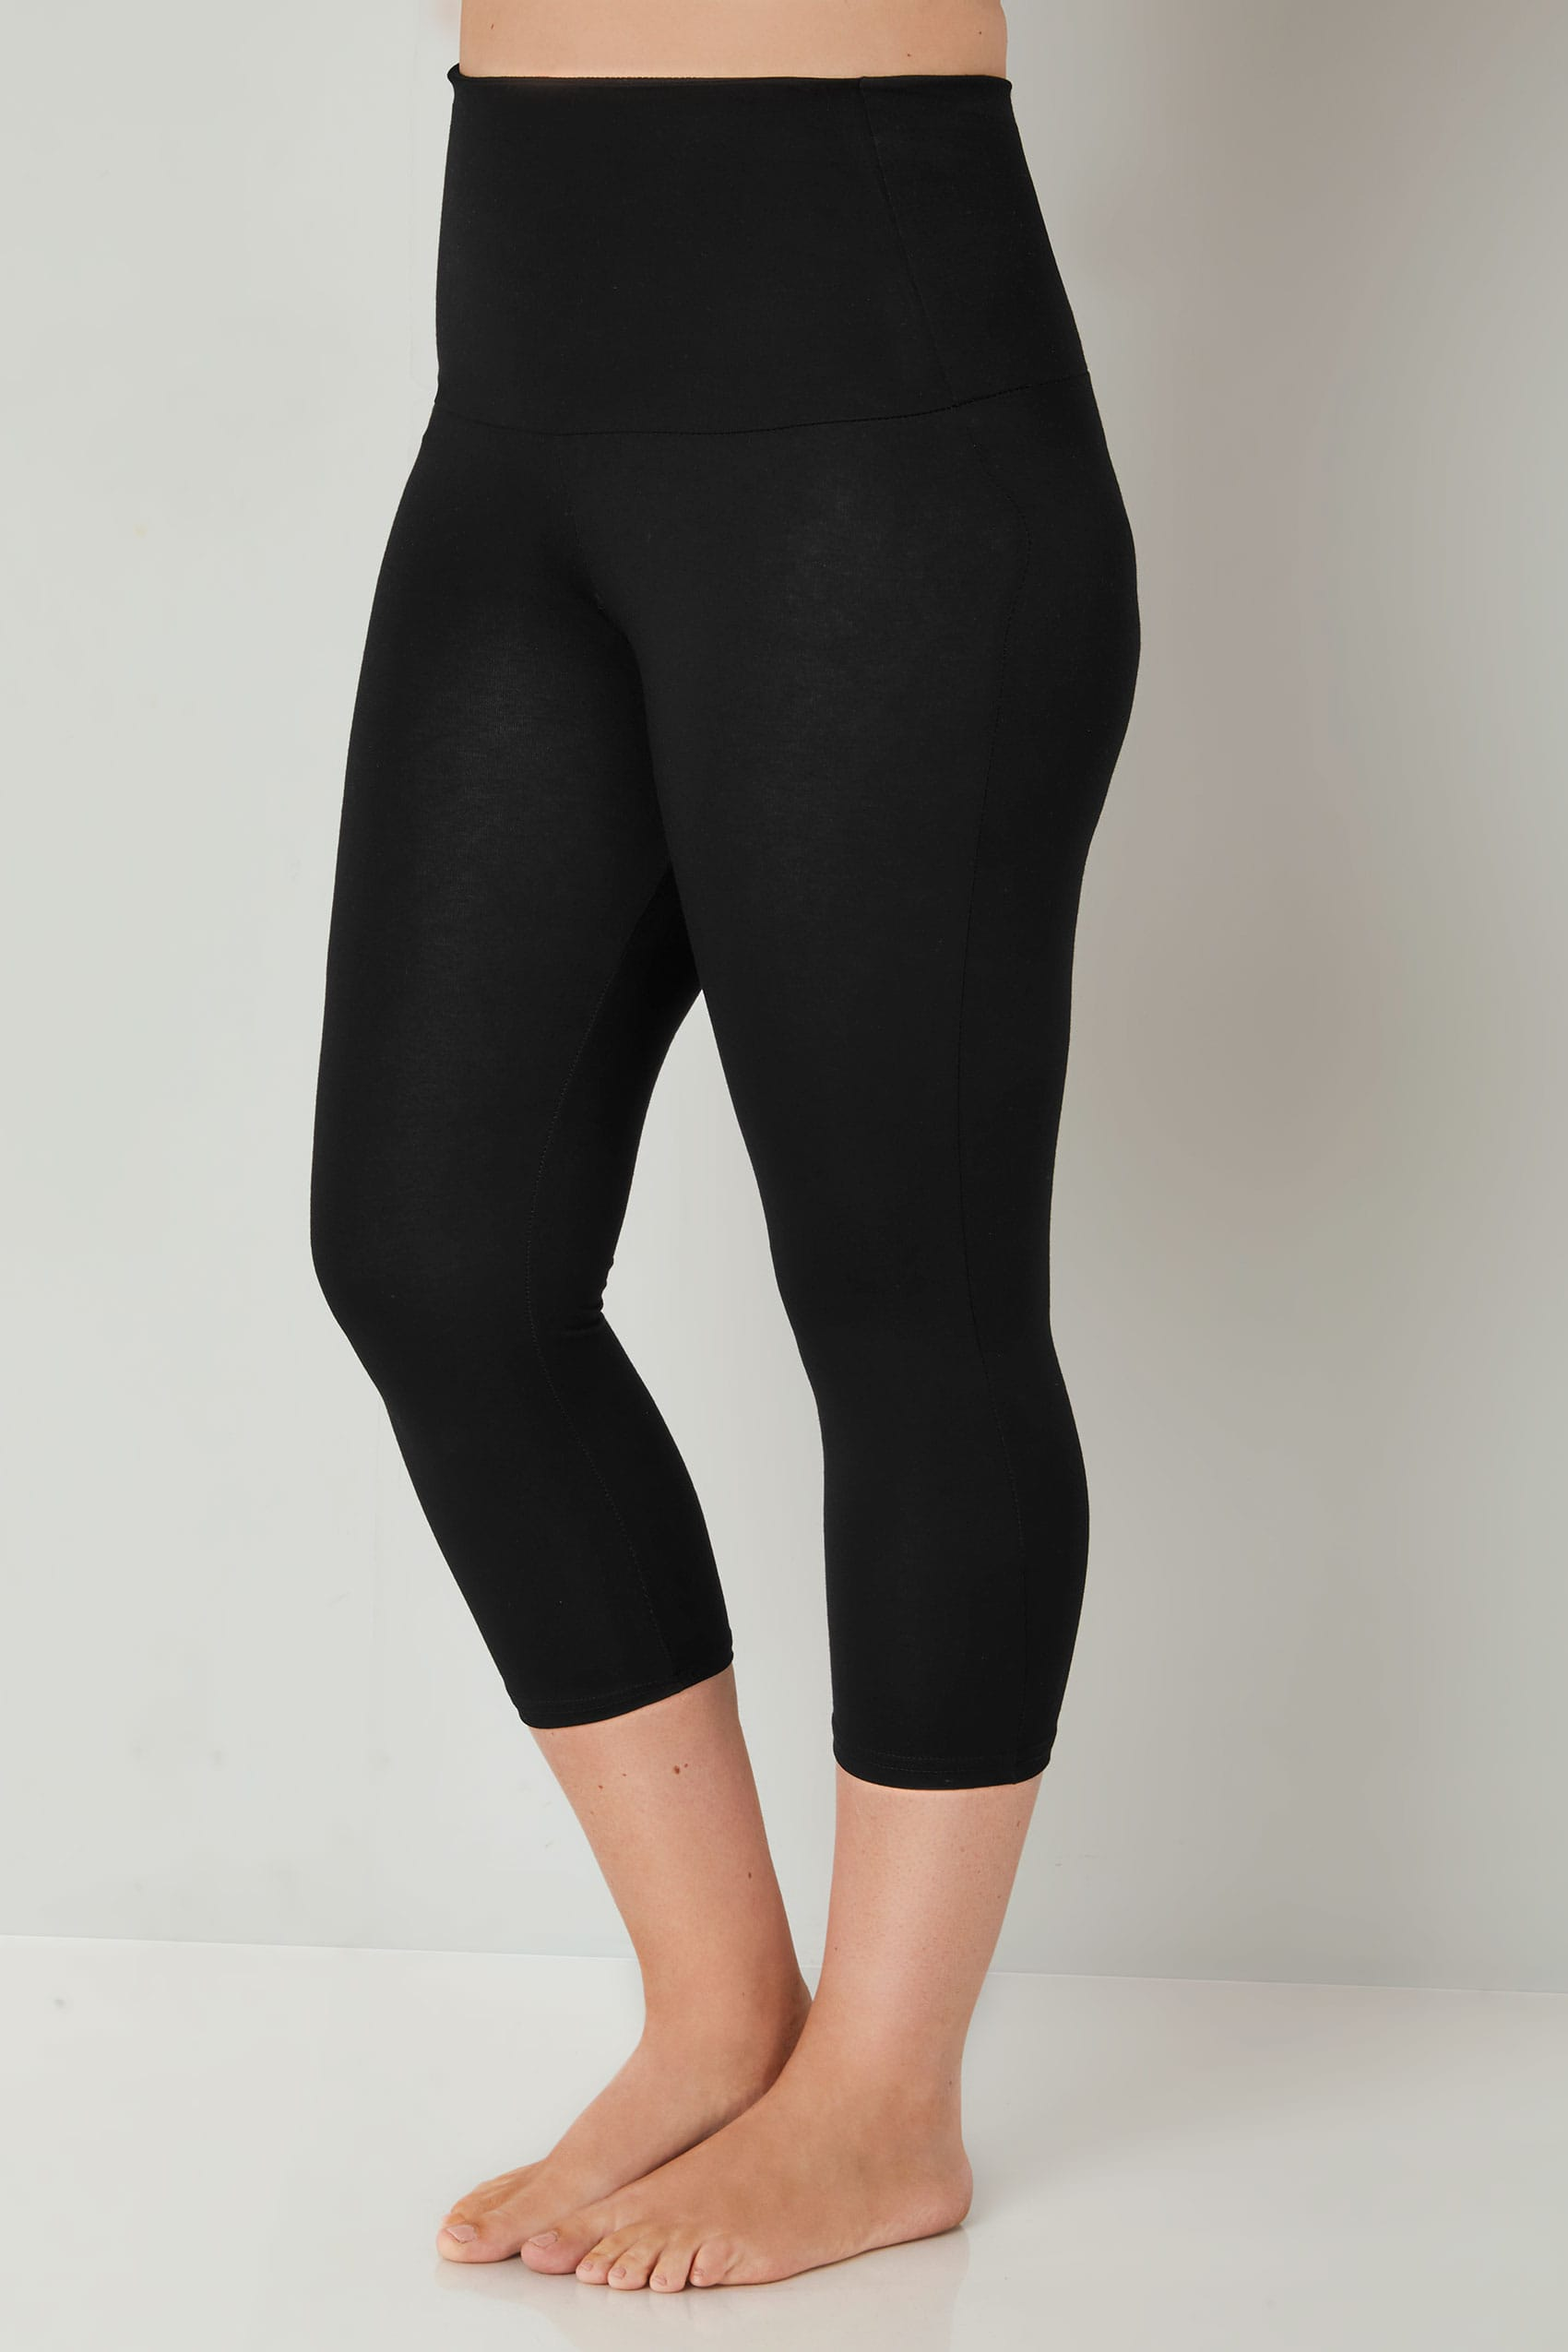 Navy Soft Touch Leggings Plus Size 16 to 32 | Yours Clothing